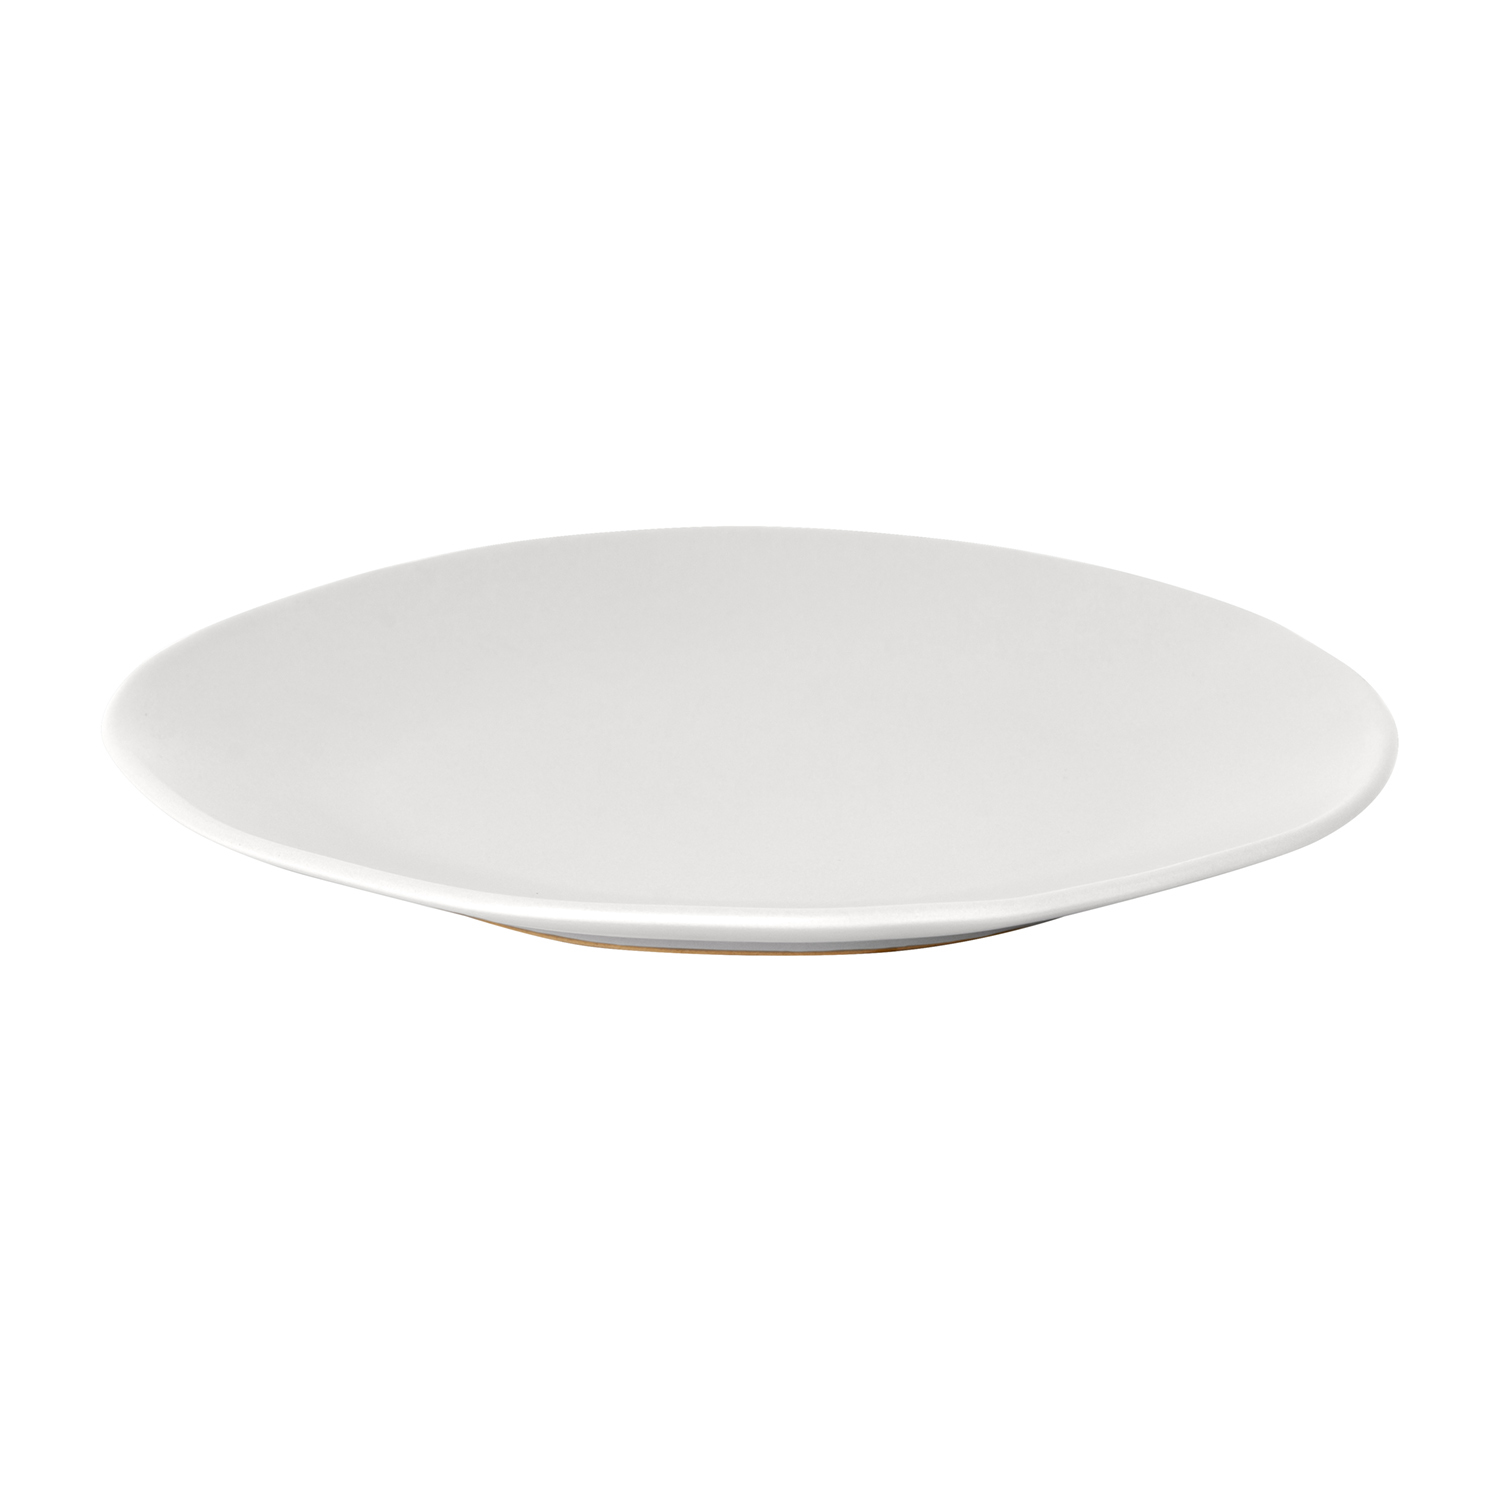 General Eclectic: Freya Dinner Plate - White image